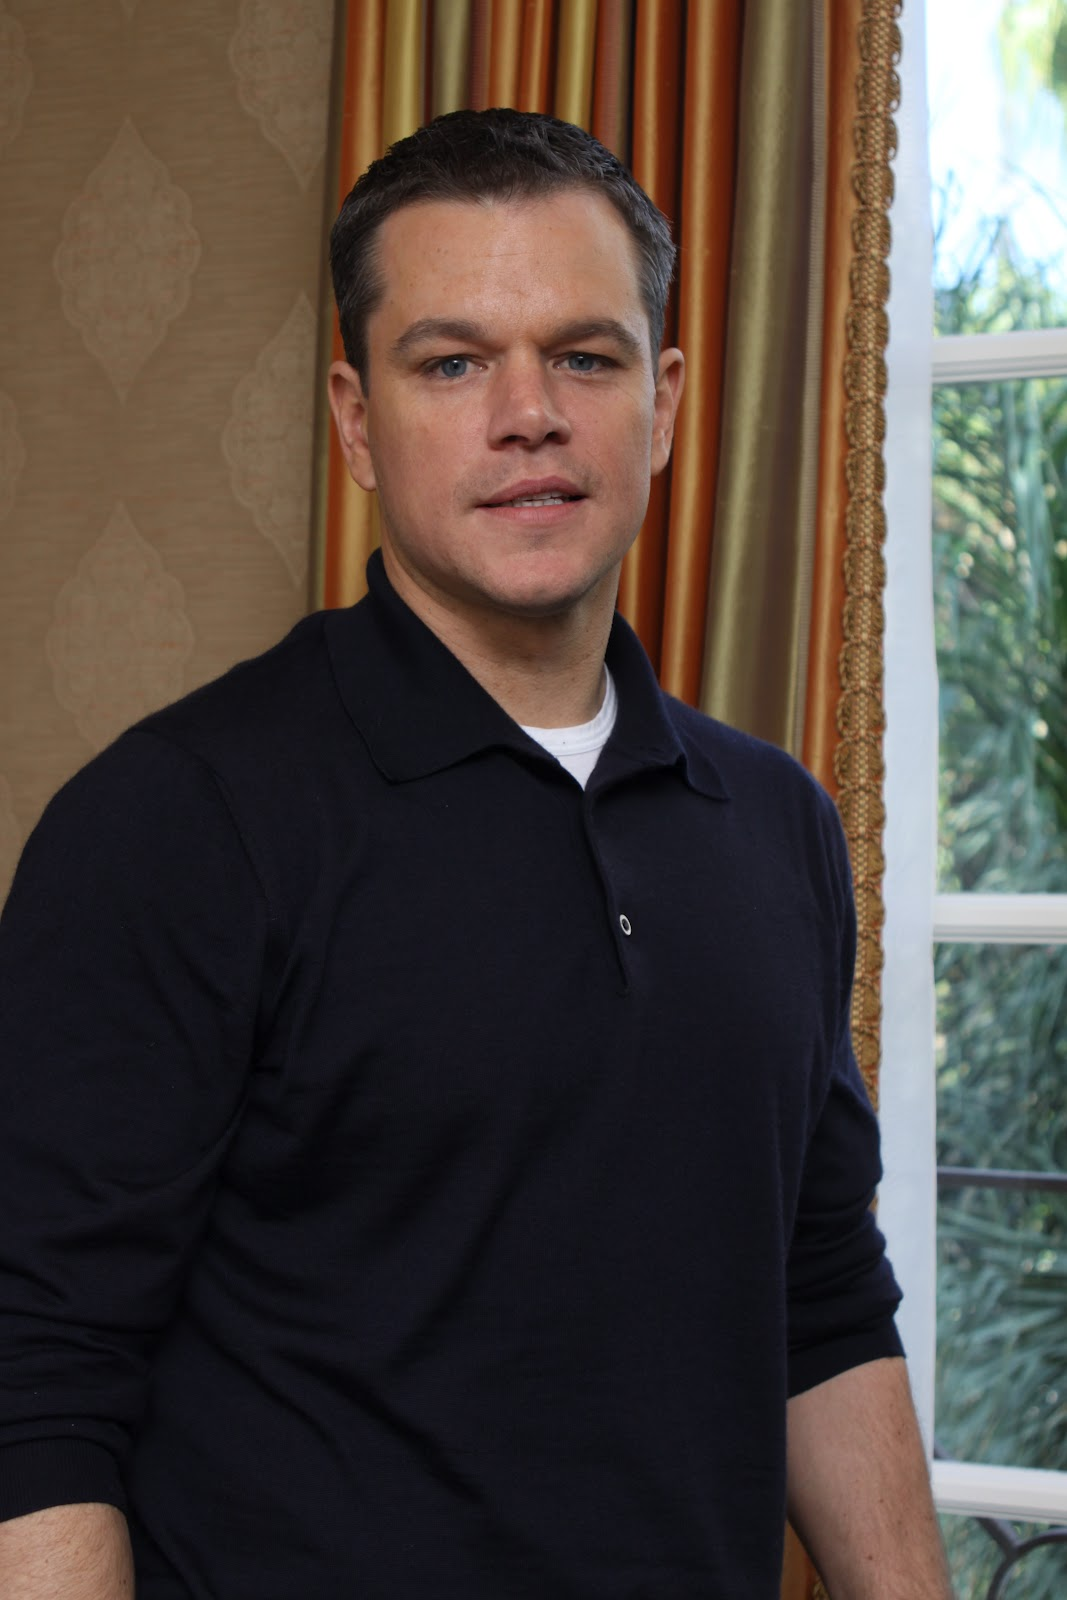 dating matt damon Matt damon, 42, is a n american actor, screenwriter, producer and philanthropist whose career was launched following the success of the film good will hunting (1997) from a screenplay he co-wrote with pal ben affleck.